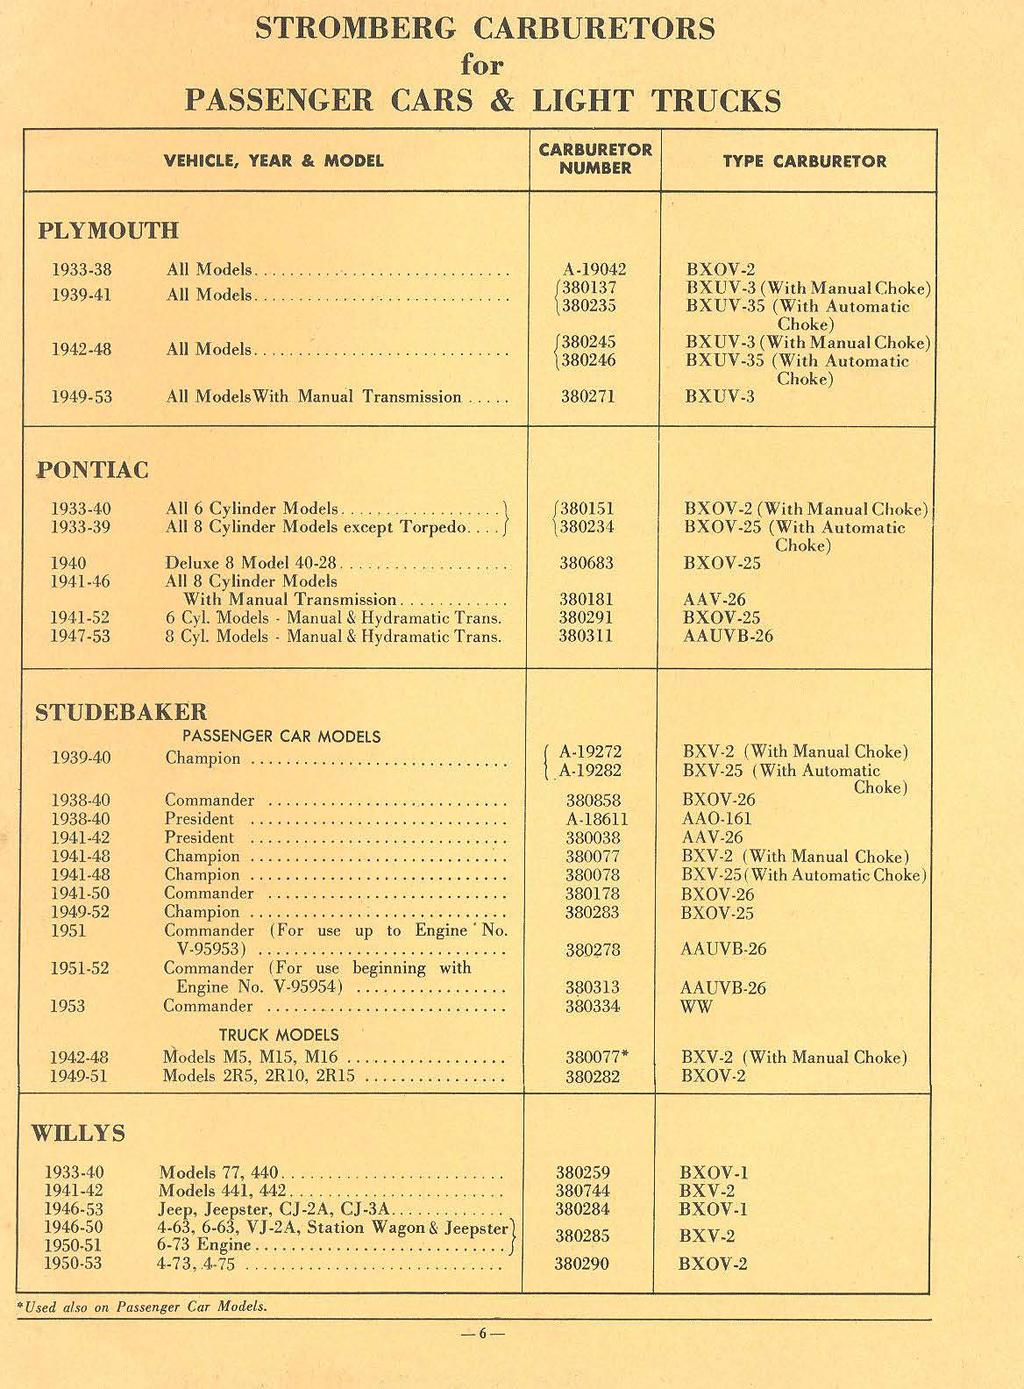 Catalog Of Carburetors For Passenger Cars Light Trucks And Ignition Circuit Diagram The 1951 54 Packard All Models Stromberg Carburetor Vehicle Year Model Number Type